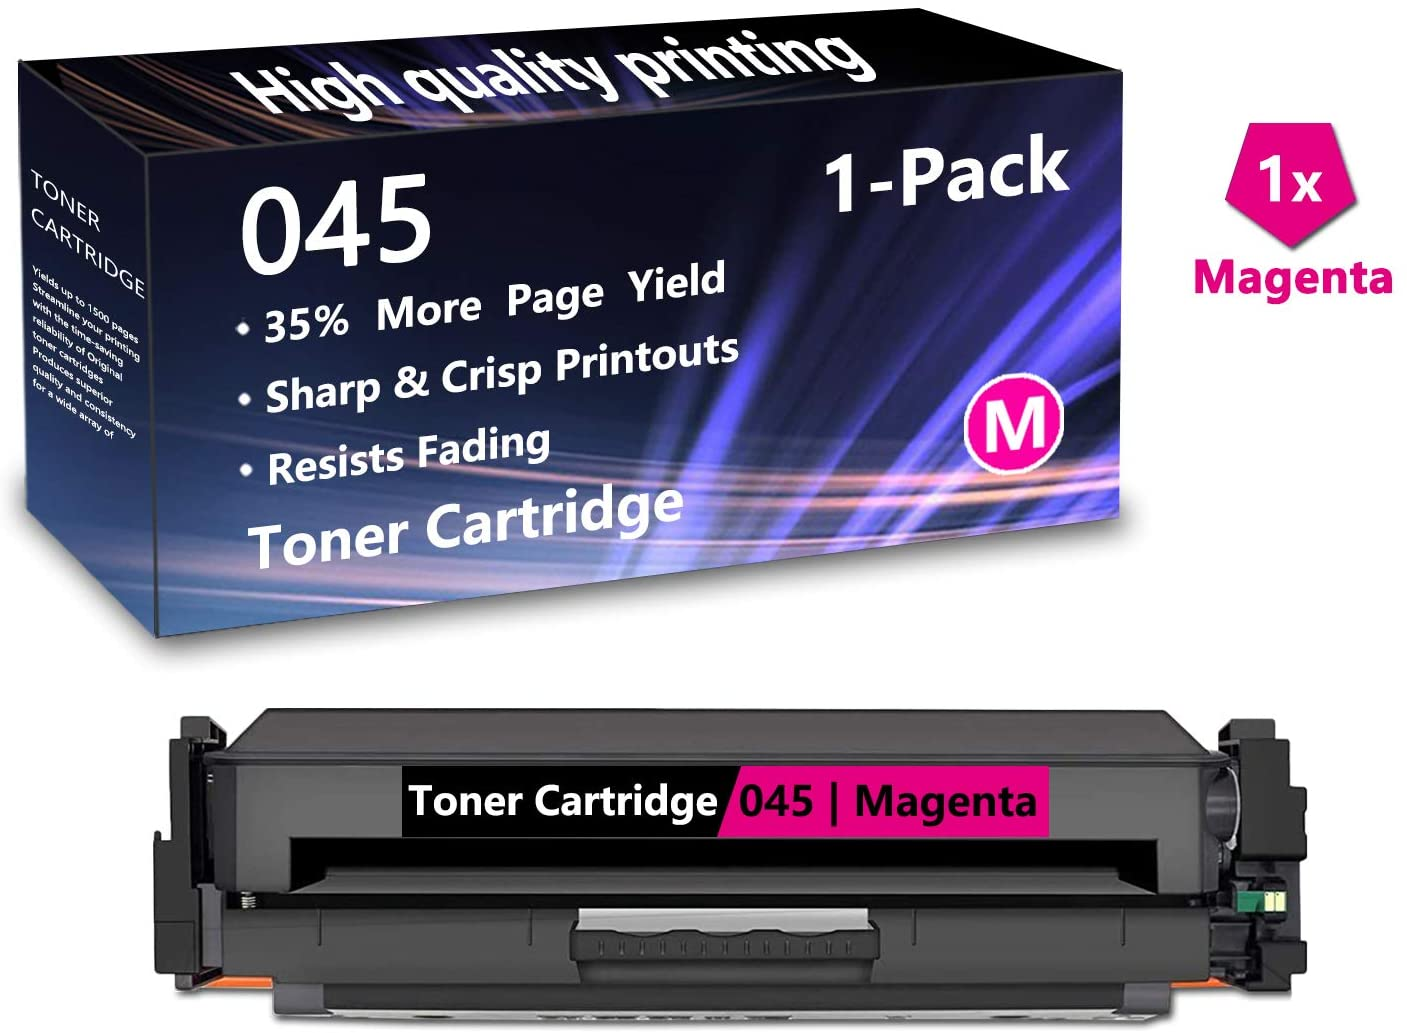 1 Pack (1 Magenta) Cartridge 045 Toner Cartridge Replacement for Canon Color imageCLASS Pro MF631Cn, MF633Cdw, MF634Cdw, MF635Cx,Pro i-SENSYS LBP613Cdw, MF635Cx Printers, Sold by AlToner.